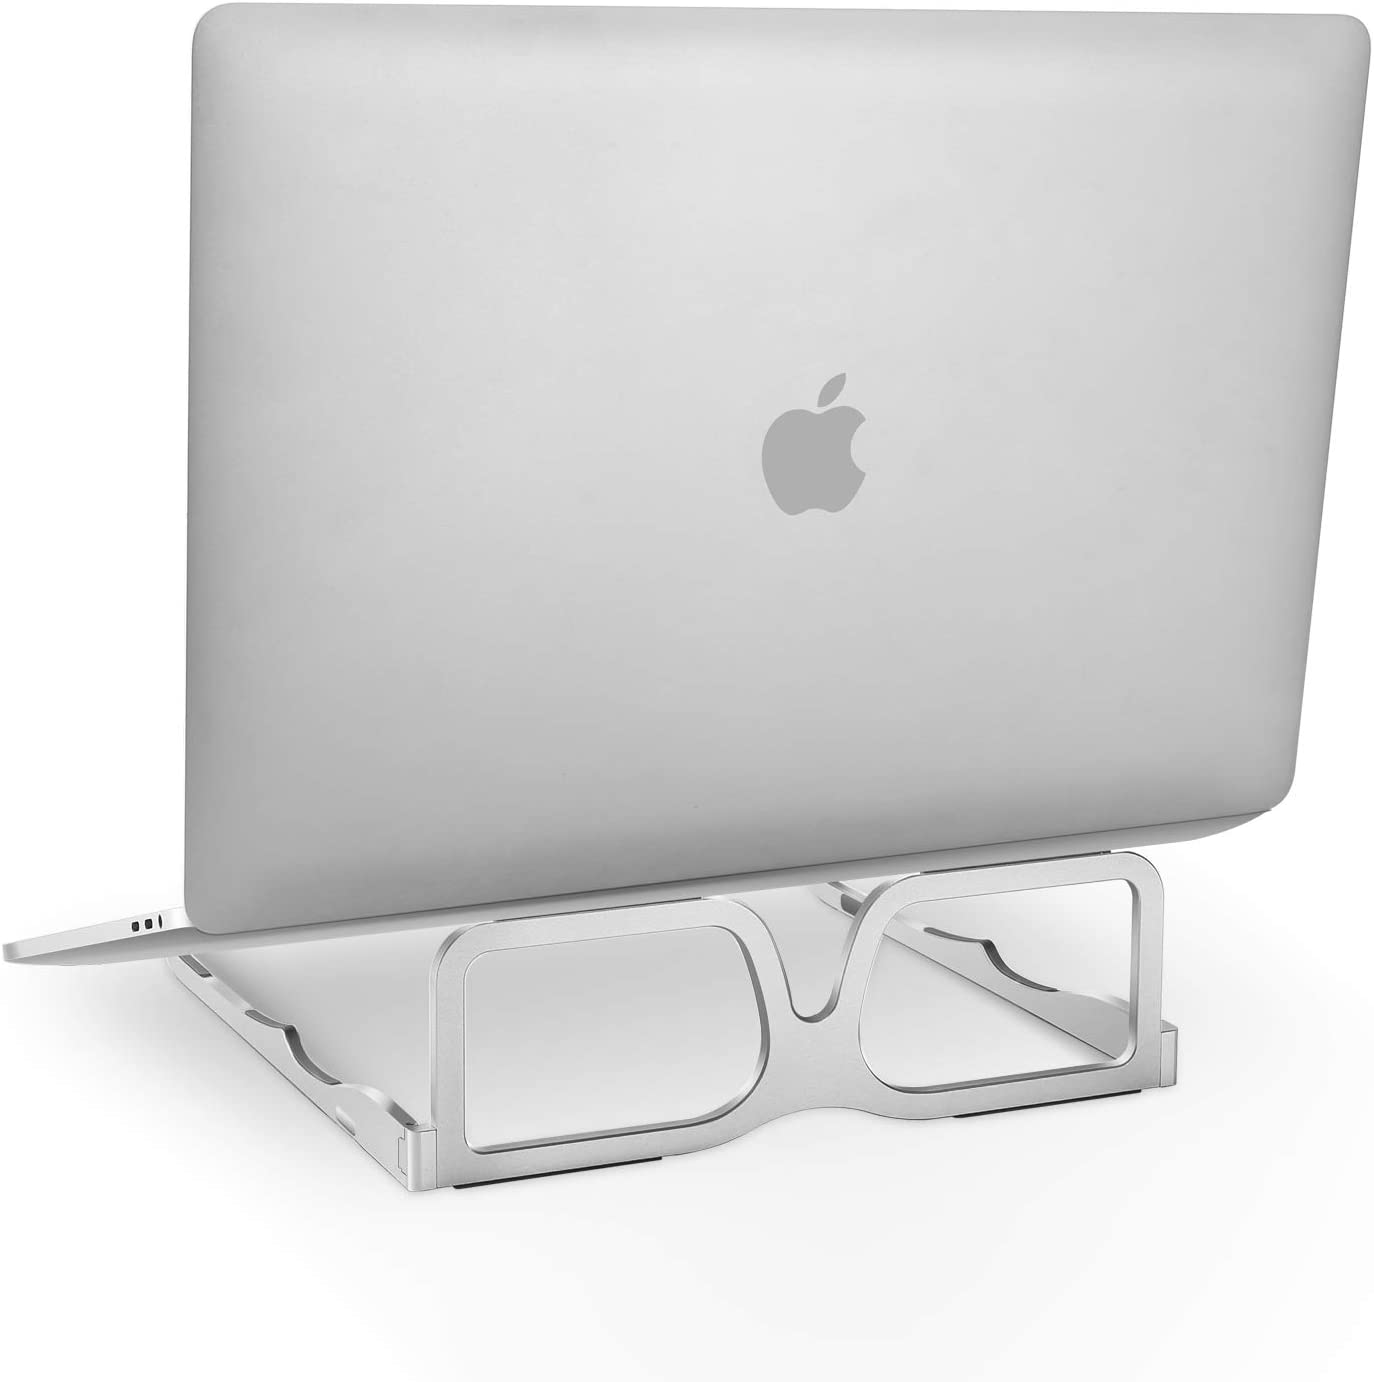 Laptop Stand Ergonomic for Desk, The Lightest and Most Portable Aluminum Notebook Riser Holder, Foldable Desktop Mount Compatible with Mac MacBook Pro Air, Surface, Lenovo, and More 10-16 in Computer